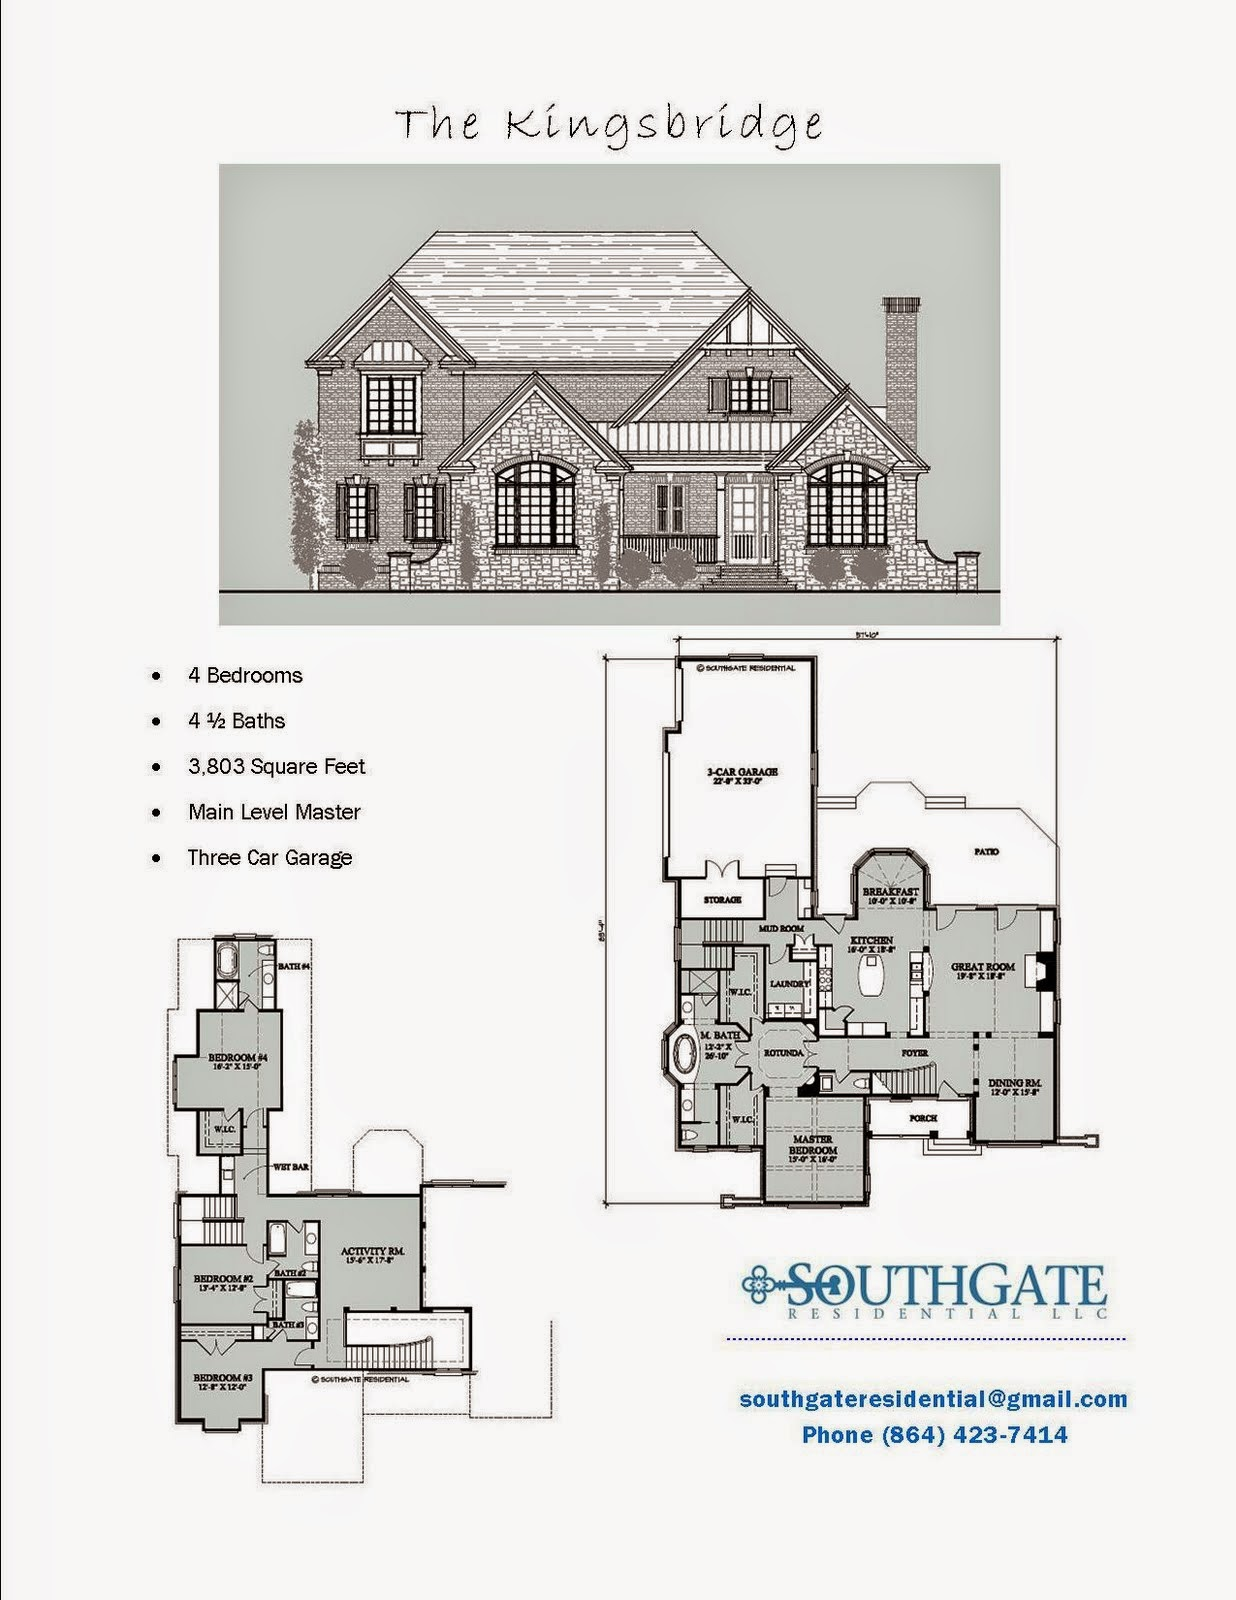 Southgate Residential Pre Designed Plan The Kingsbridge